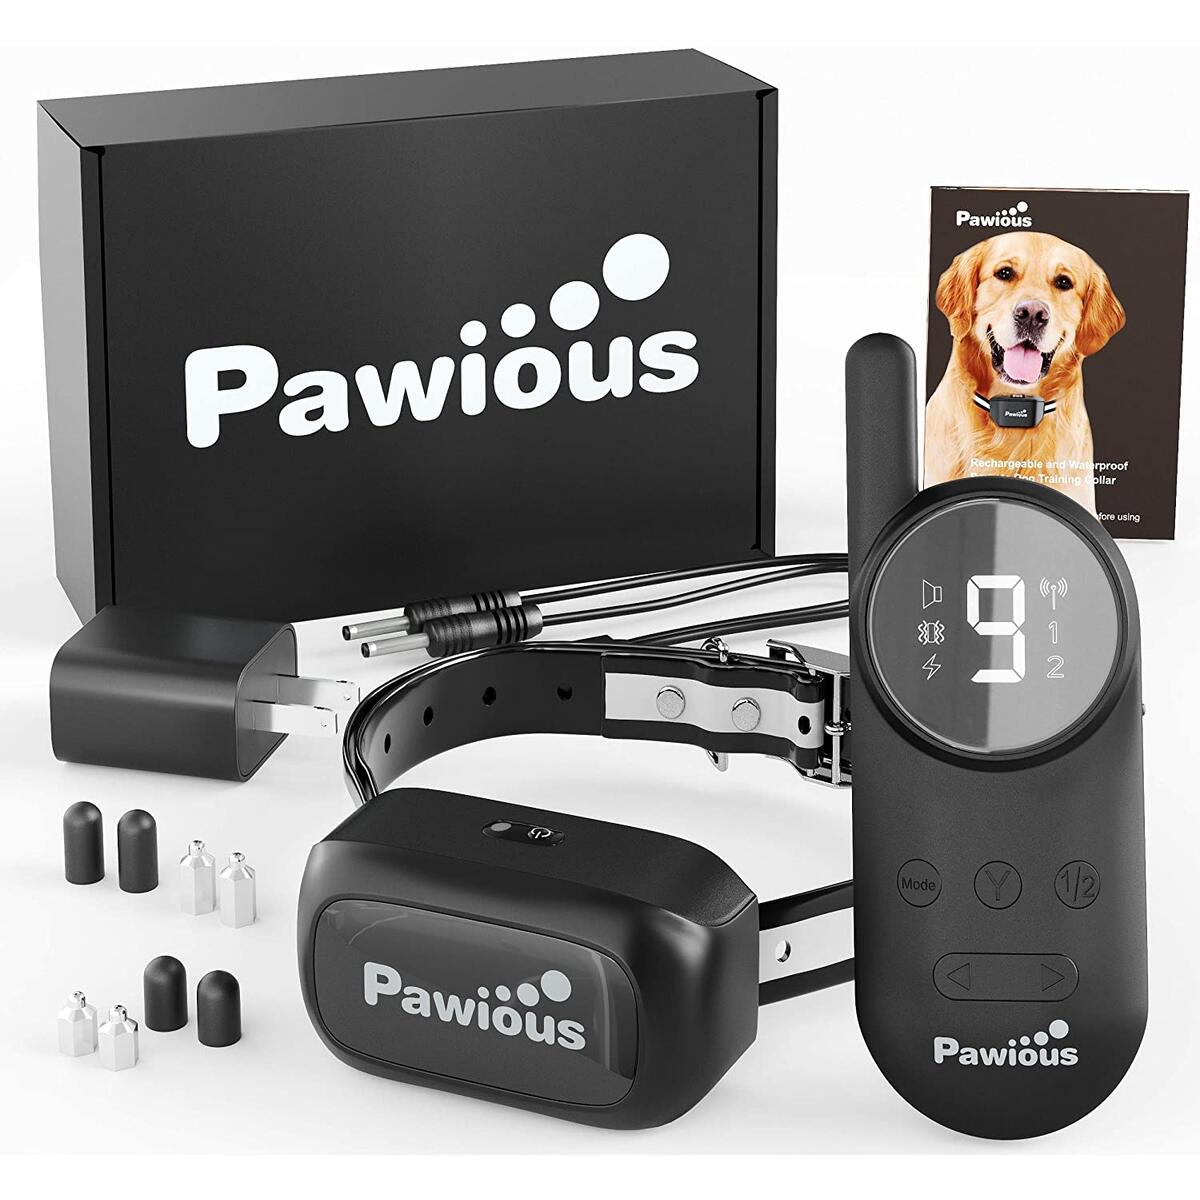 Pawious Dog Training Collar with Remote [Newest] - Rechargeable Dog Shock Collar for Small Medium and Large Dogs | Long Range up to 1600ft, Waterproof, E-Collar…